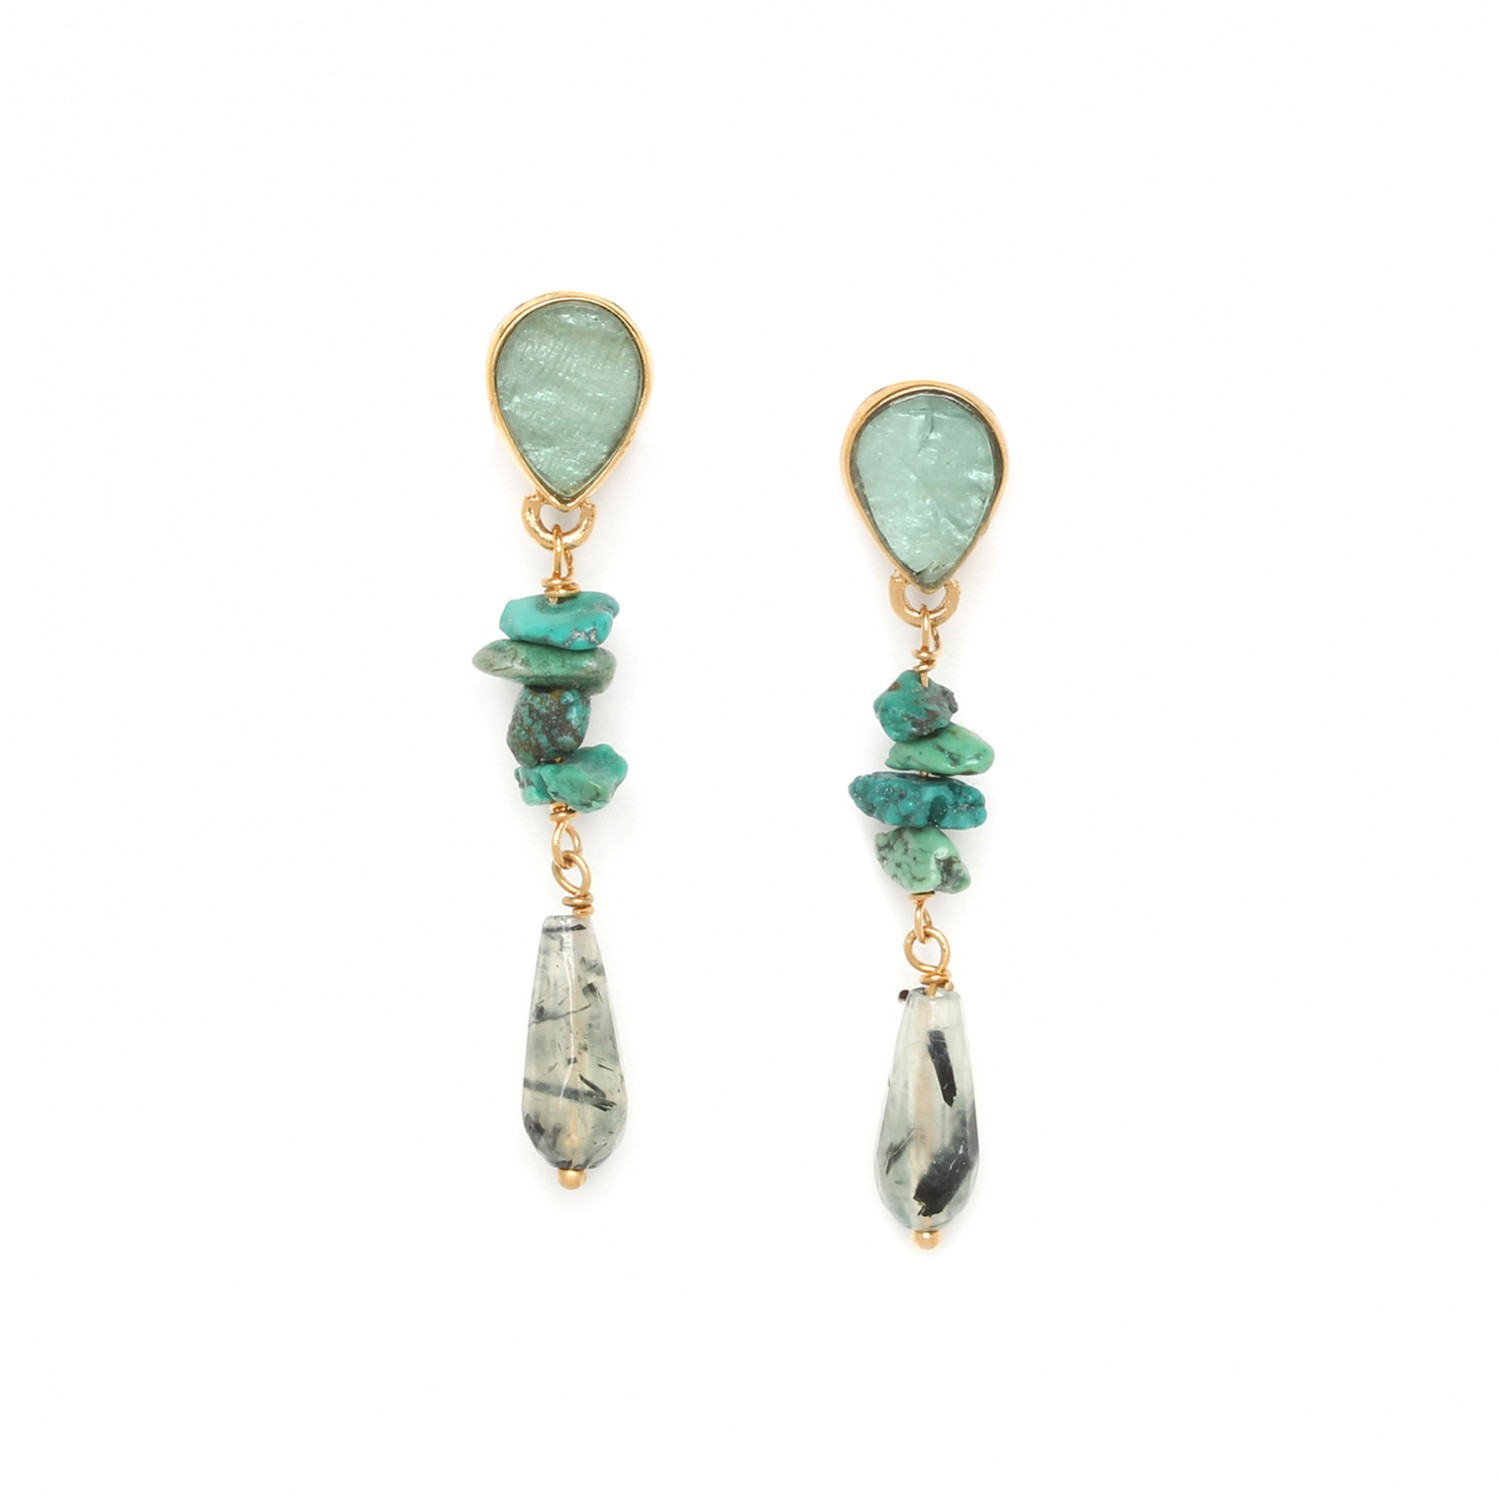 EUCALYPTUS 2 drops earrings